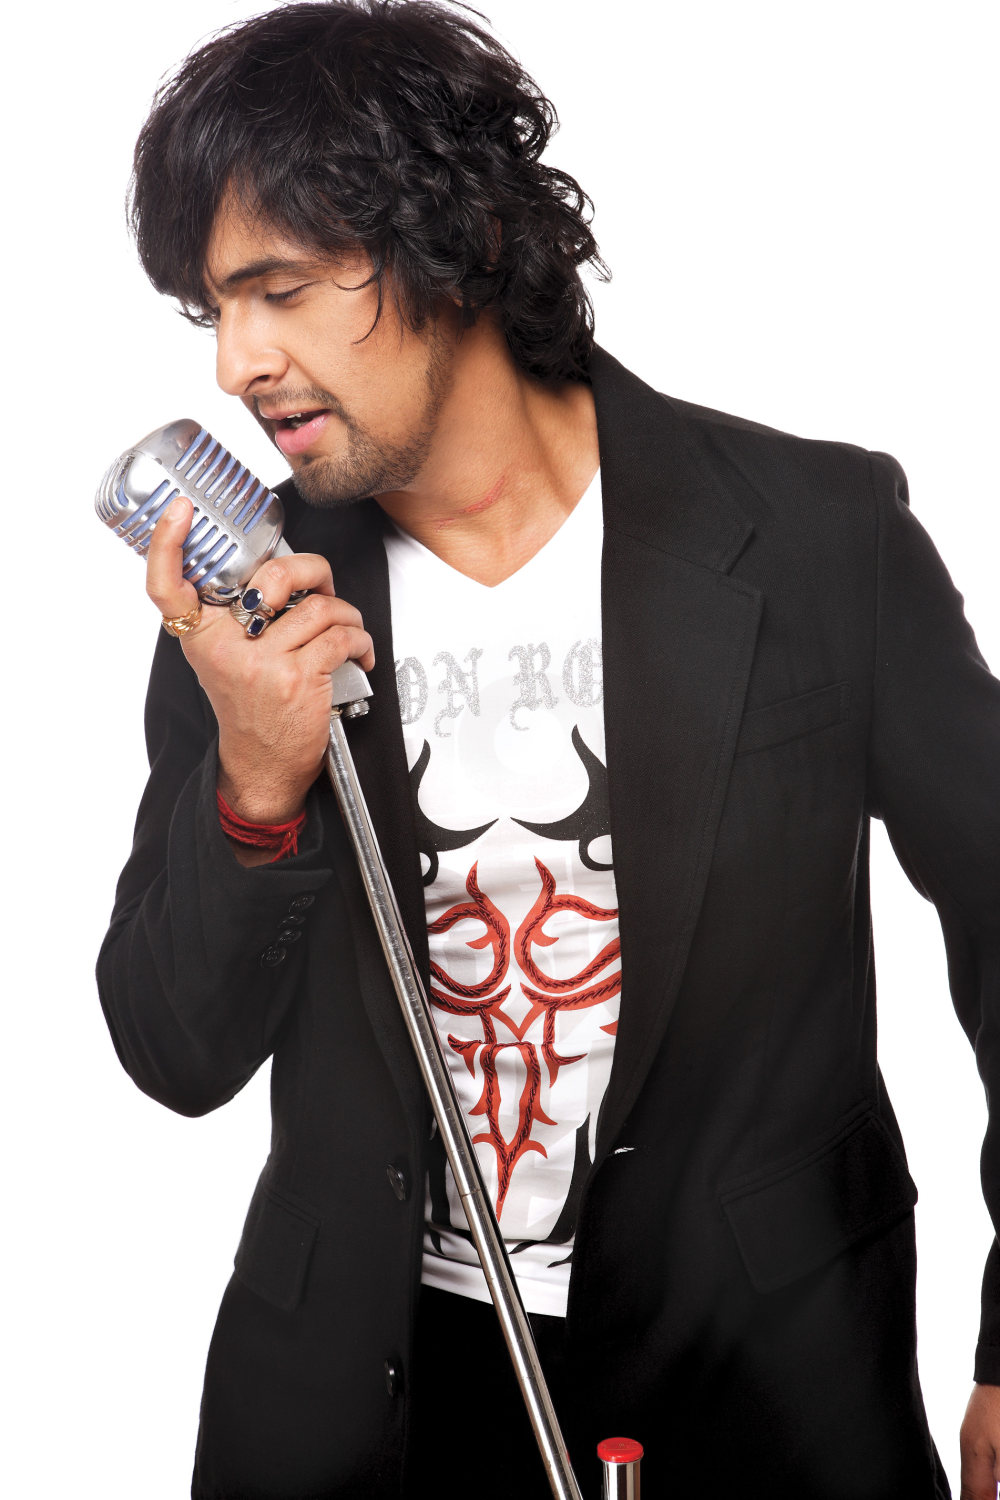 Name Sonu Nigam Wallpaper Pack 1 Total Images 09 Resolution N A Genre Bollywood Actor Celebrities